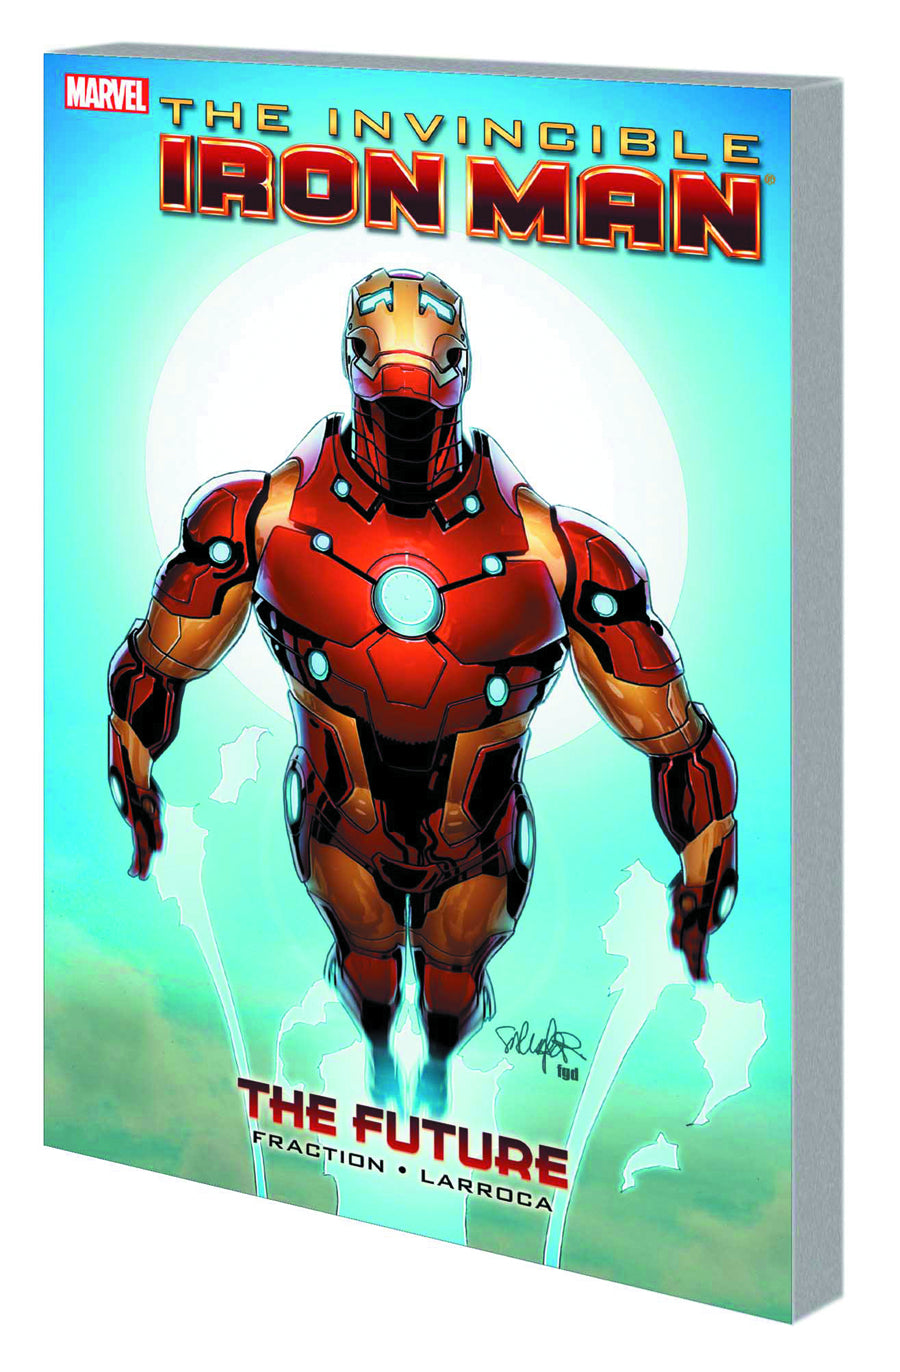 INVINCIBLE IRON MAN TP VOL 11 FUTURE | Game Master's Emporium (The New GME)